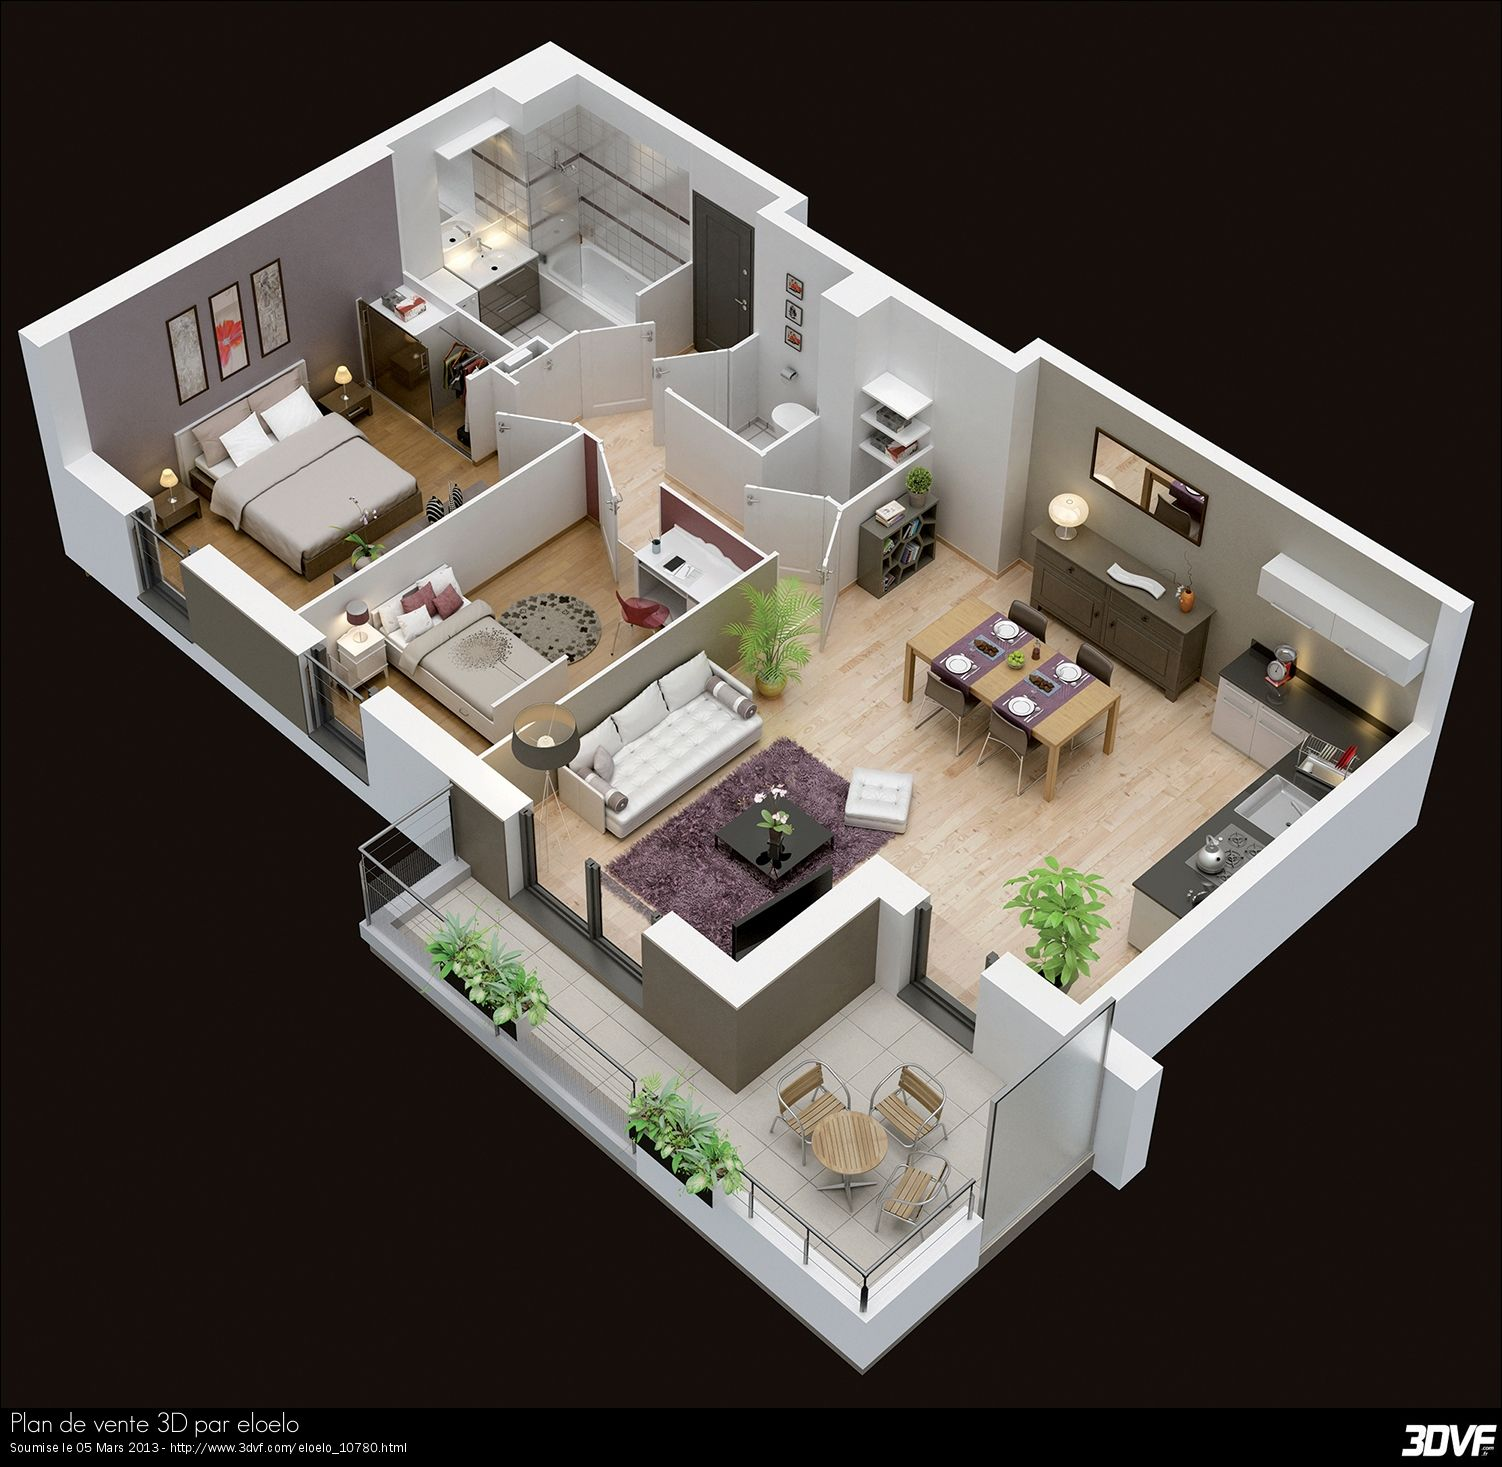 Plan maison moderne 3d 3d pinterest plan maison for Les plans des villas modernes